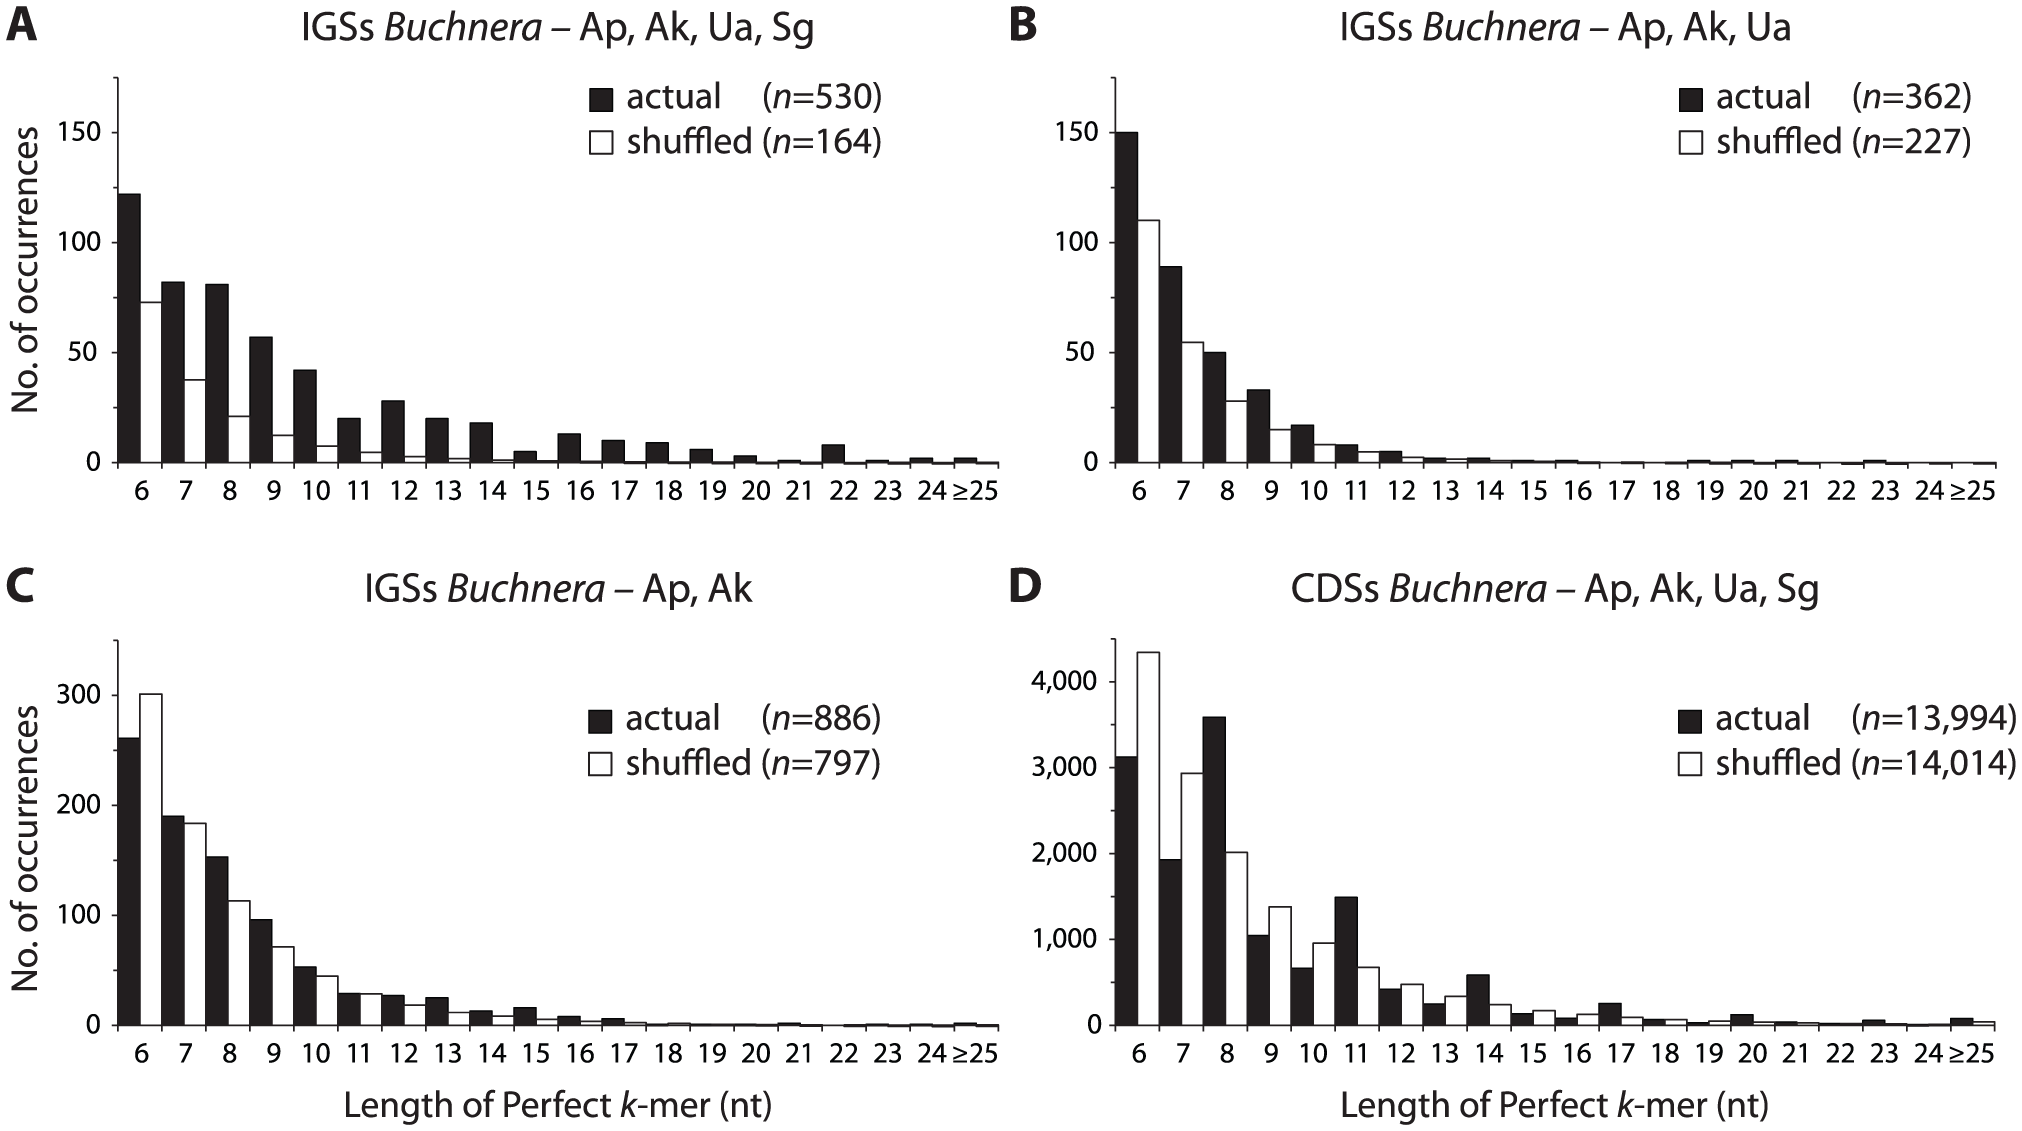 Actual and expected distributions of conserved <i>k</i>-mers in IGSs and CDs.